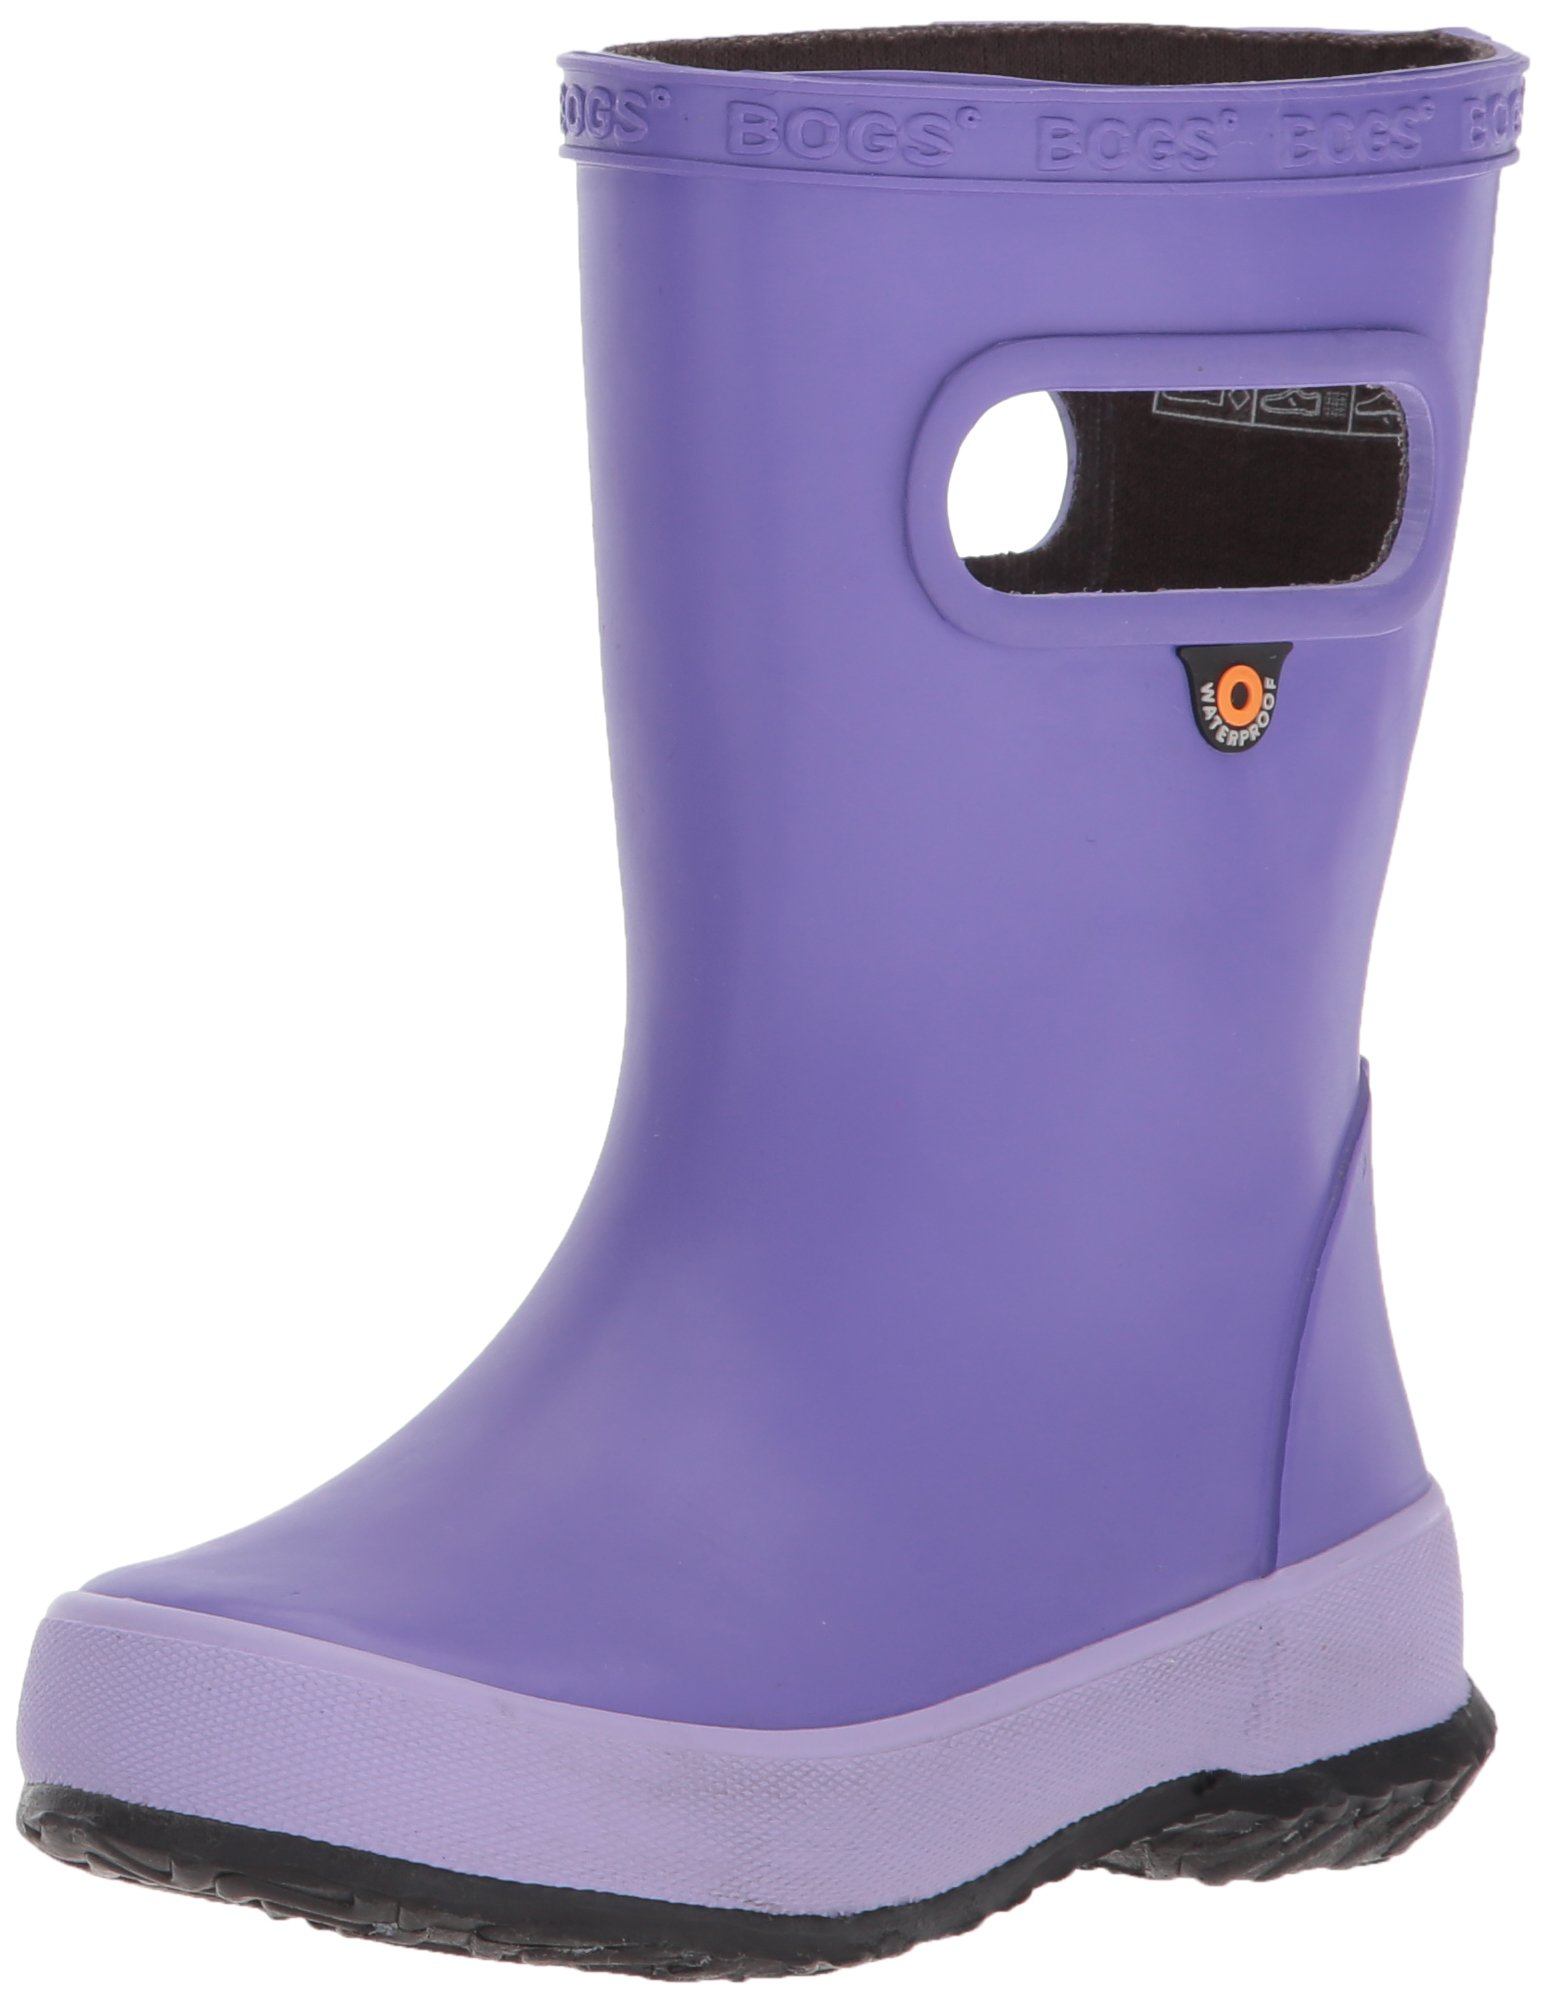 Bogs Kids' Skipper Waterproof Rubber Rain Boot for Boys and Girls,Solid Violet,11 M US Little Kid by Bogs (Image #1)